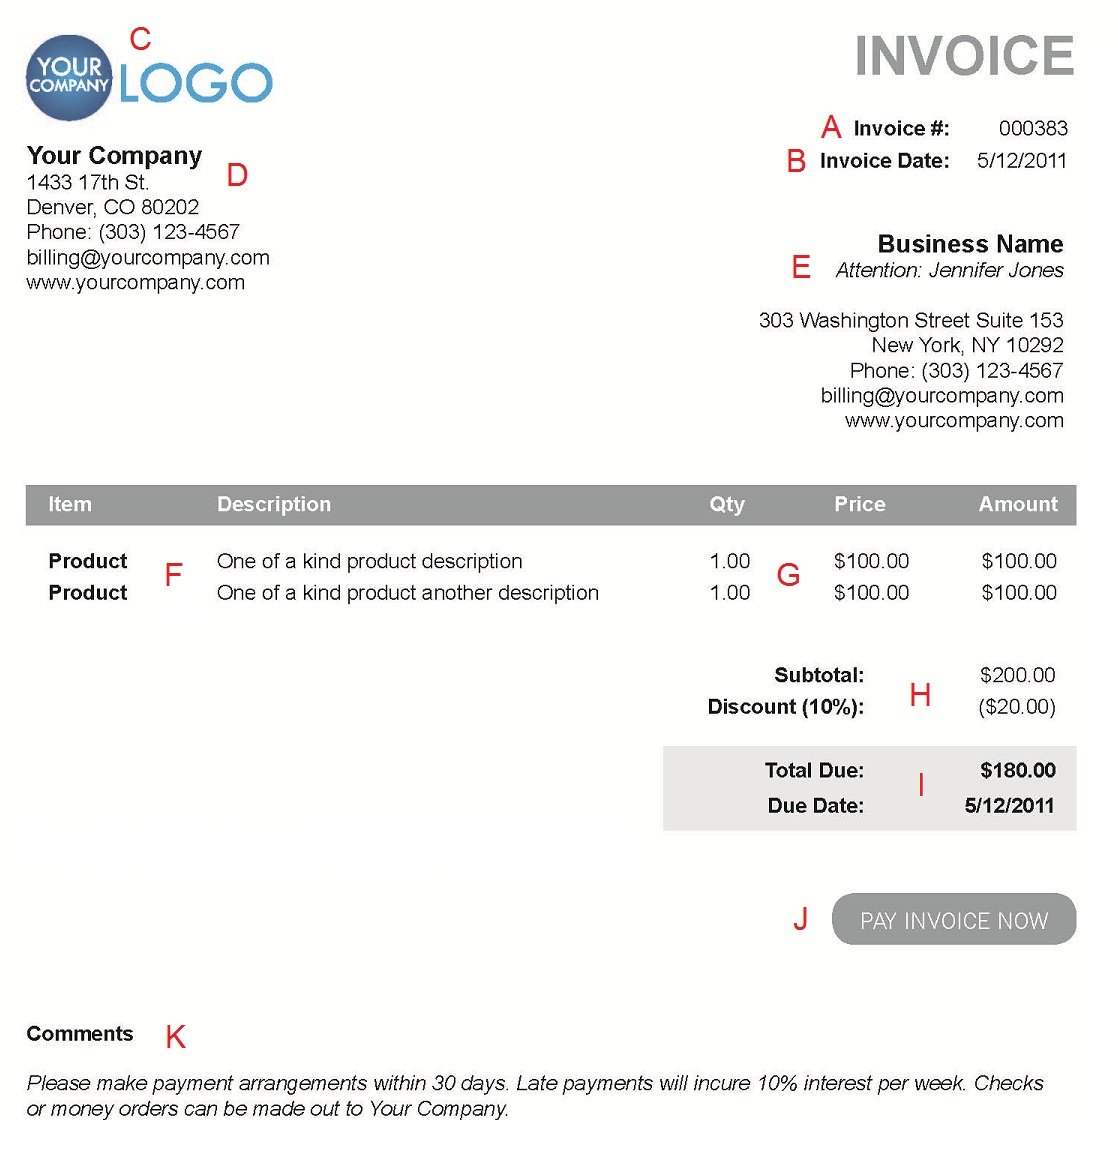 Ultrablogus  Wonderful The  Different Sections Of An Electronic Payment Invoice With Inspiring A  With Cute Invoice Price On Car Also Email An Invoice In Addition Used Car Invoice And What Is Invoice Mean As Well As Auto Mechanic Invoice Template Additionally Jeep Invoice Pricing From Paysimplecom With Ultrablogus  Inspiring The  Different Sections Of An Electronic Payment Invoice With Cute A  And Wonderful Invoice Price On Car Also Email An Invoice In Addition Used Car Invoice From Paysimplecom